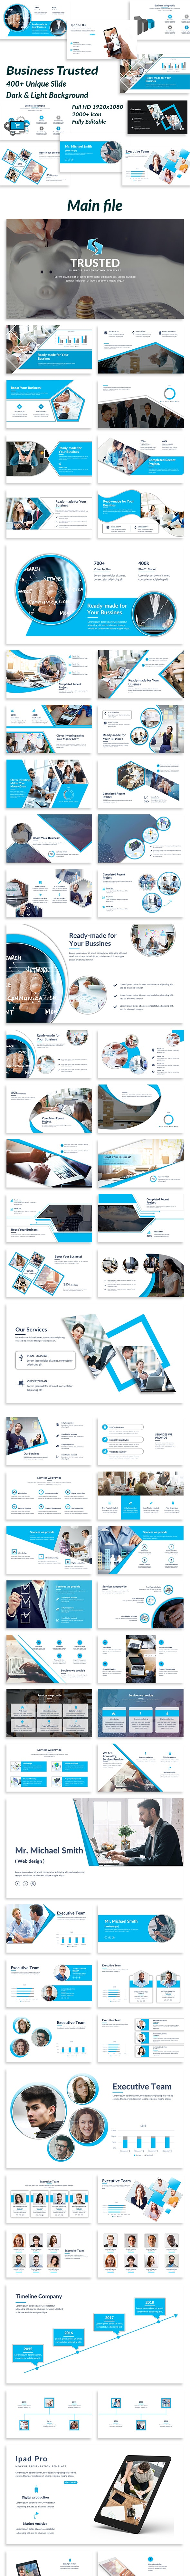 Business Trusted Keynote Template - Business Keynote Templates